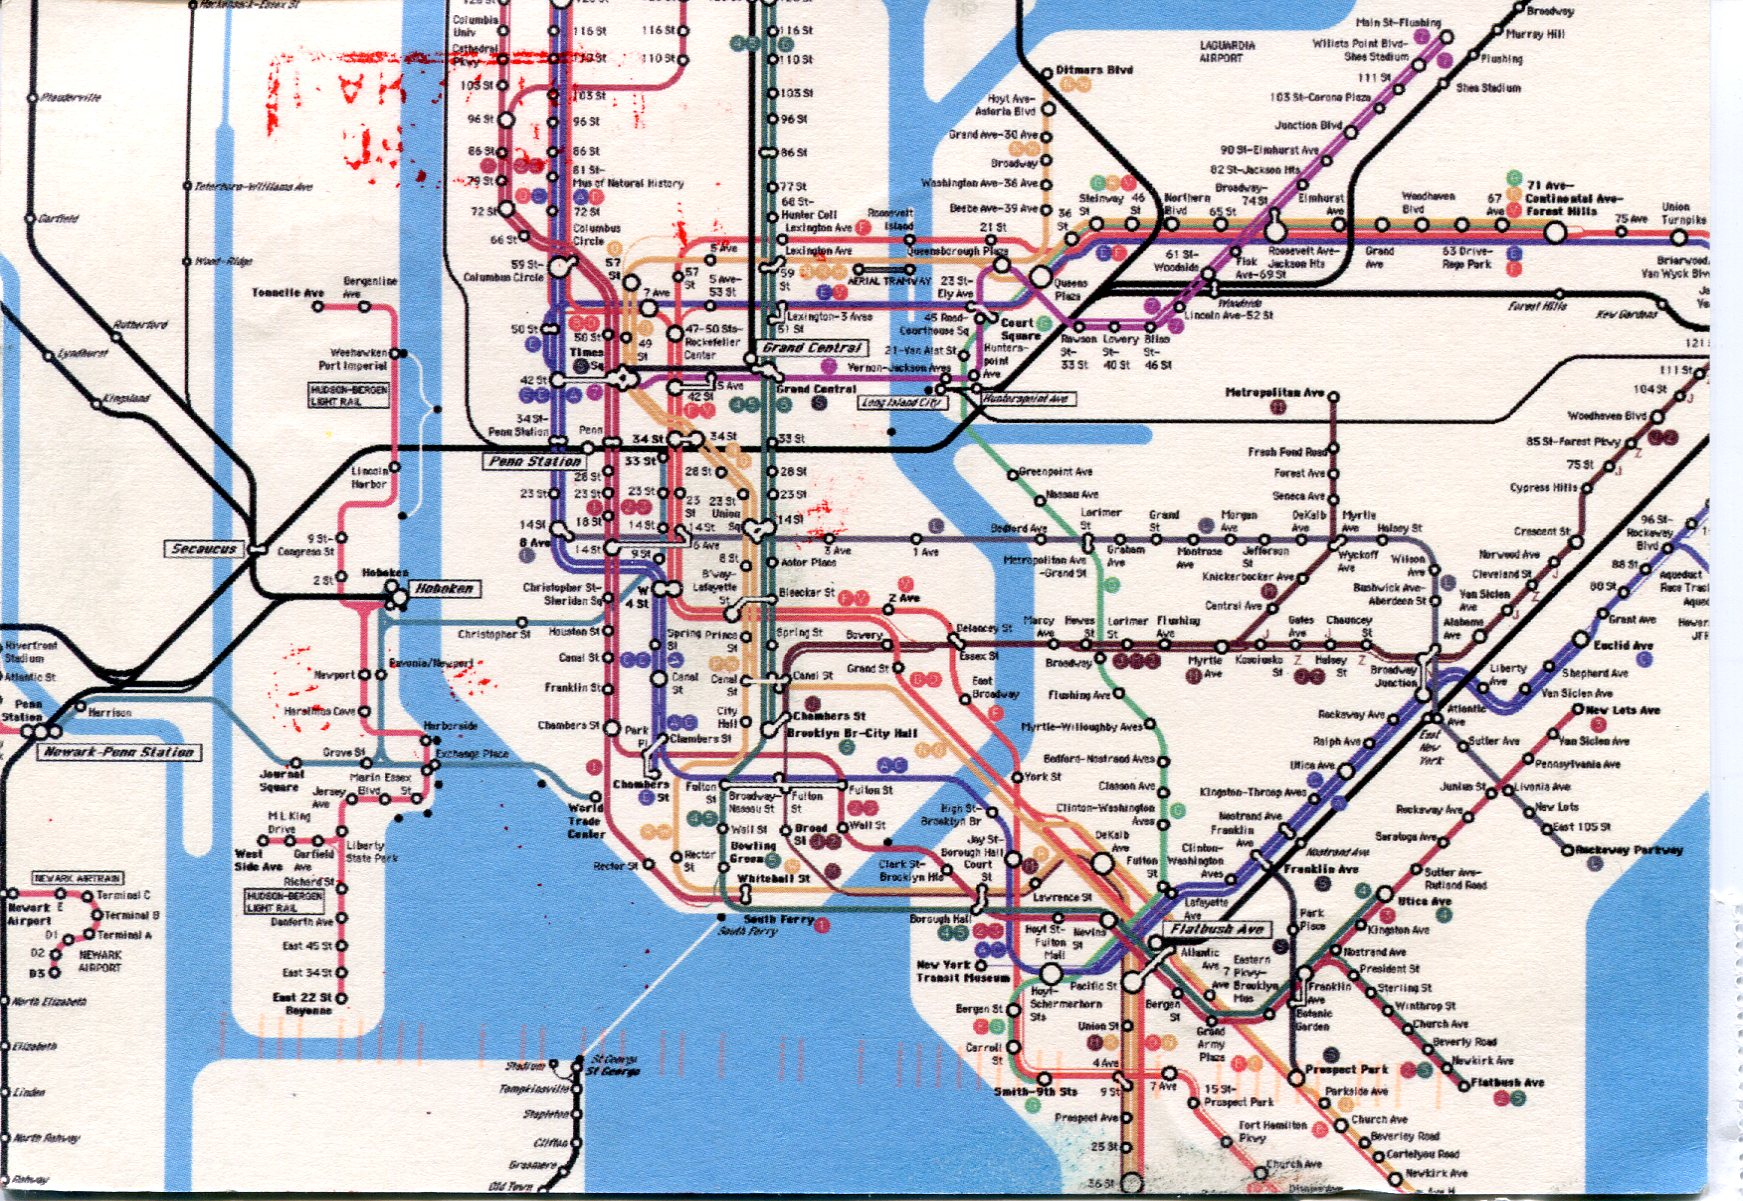 New York City Subway Map Remembering Letters and Postcards